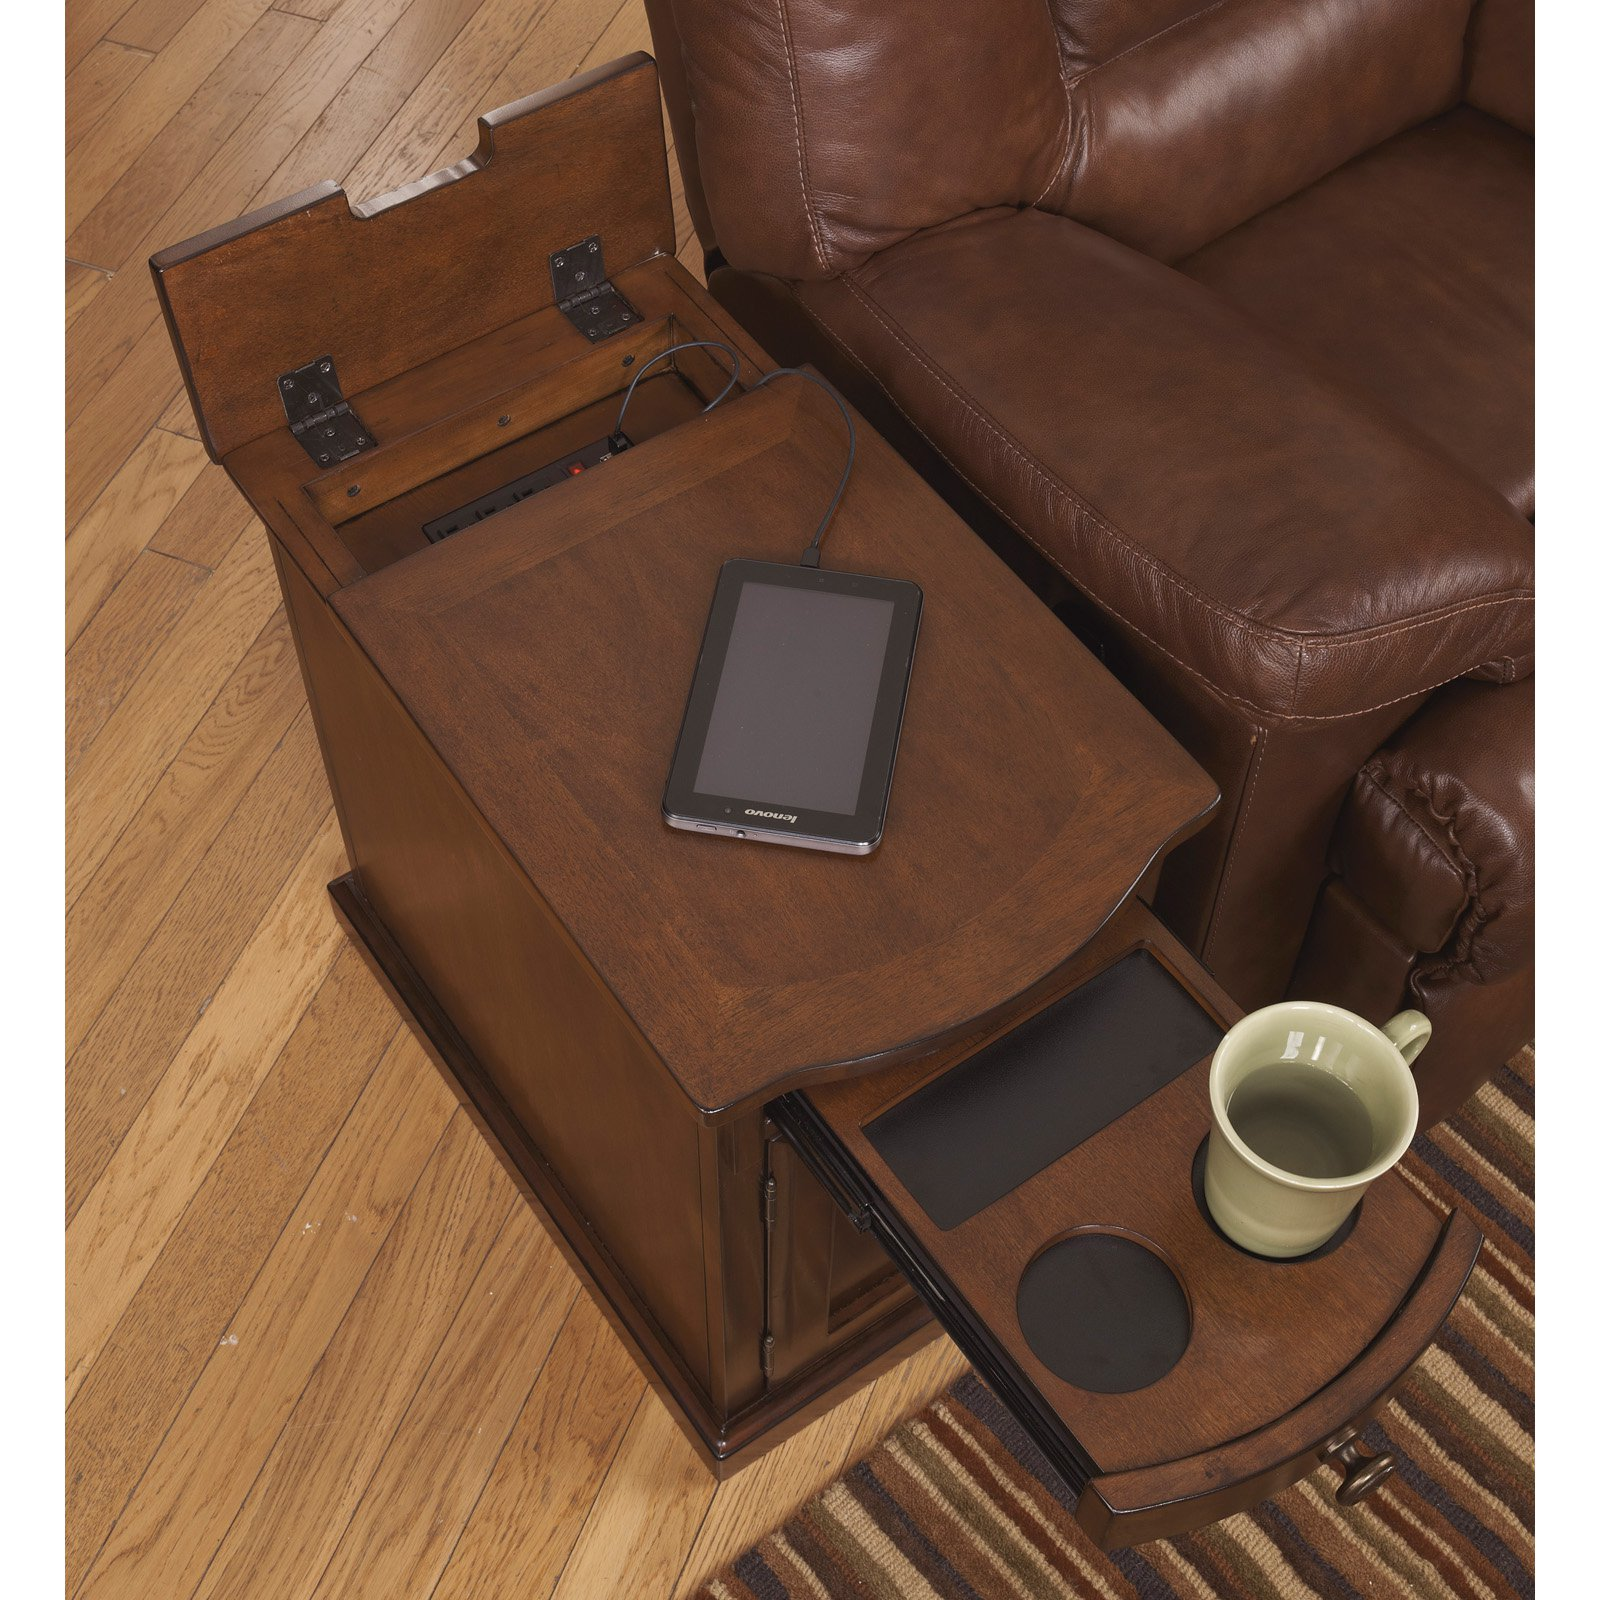 superior Ashley End Table With Power Part - 12: Signature Design by Ashley Laflorn Chair Side End Table, Multiple Colors -  Walmart.com